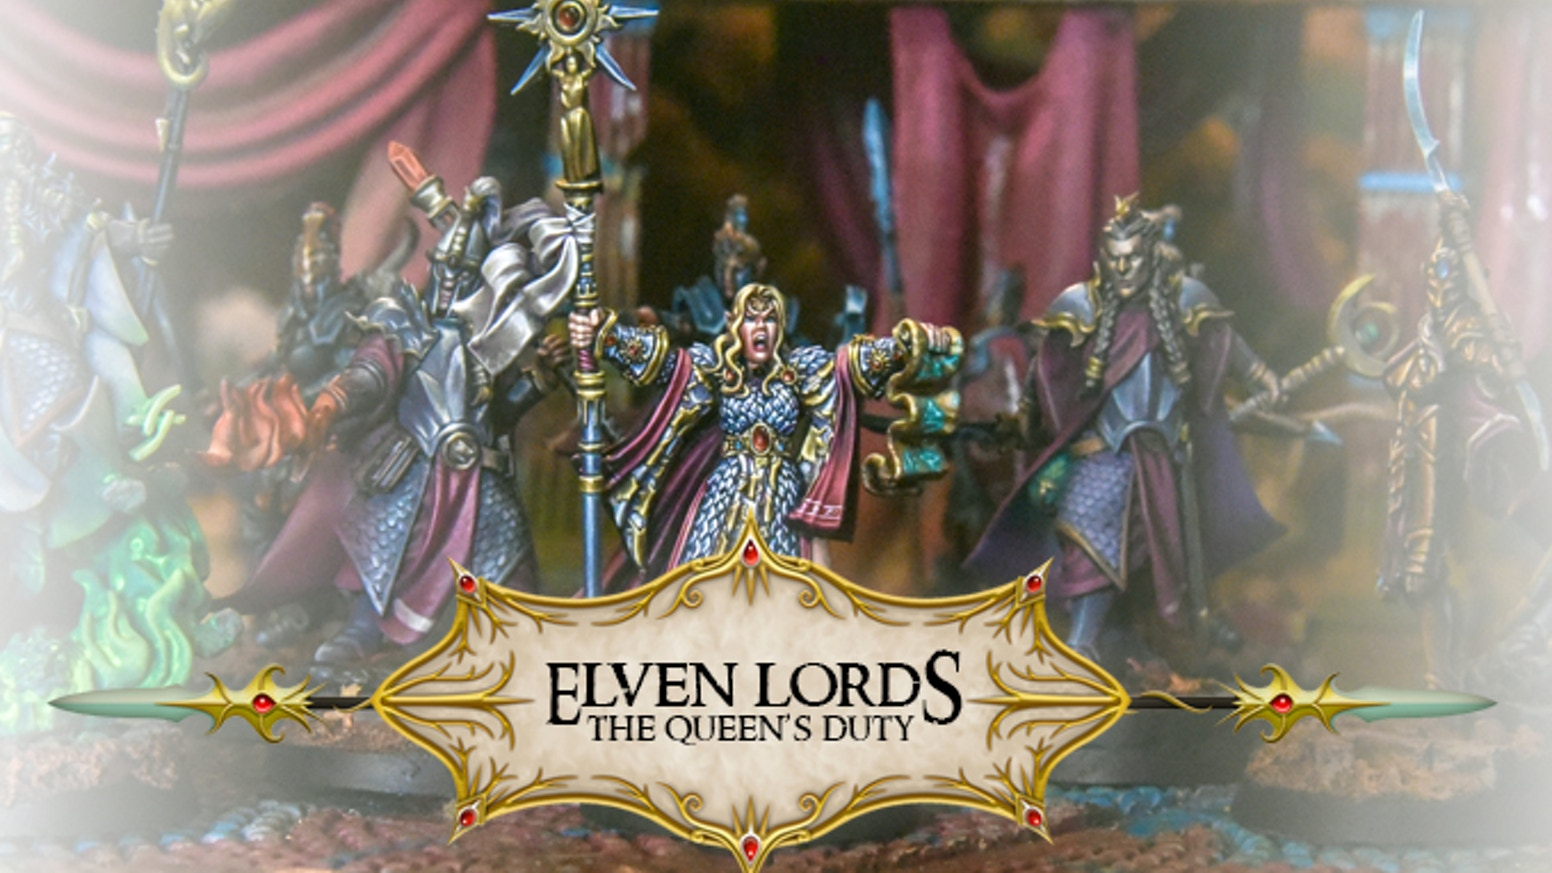 The Elven Lords: Queen's Duty. Our third elven campaign in kickstarter with new models as the Black Swan knights, Dragon Knight, etc.